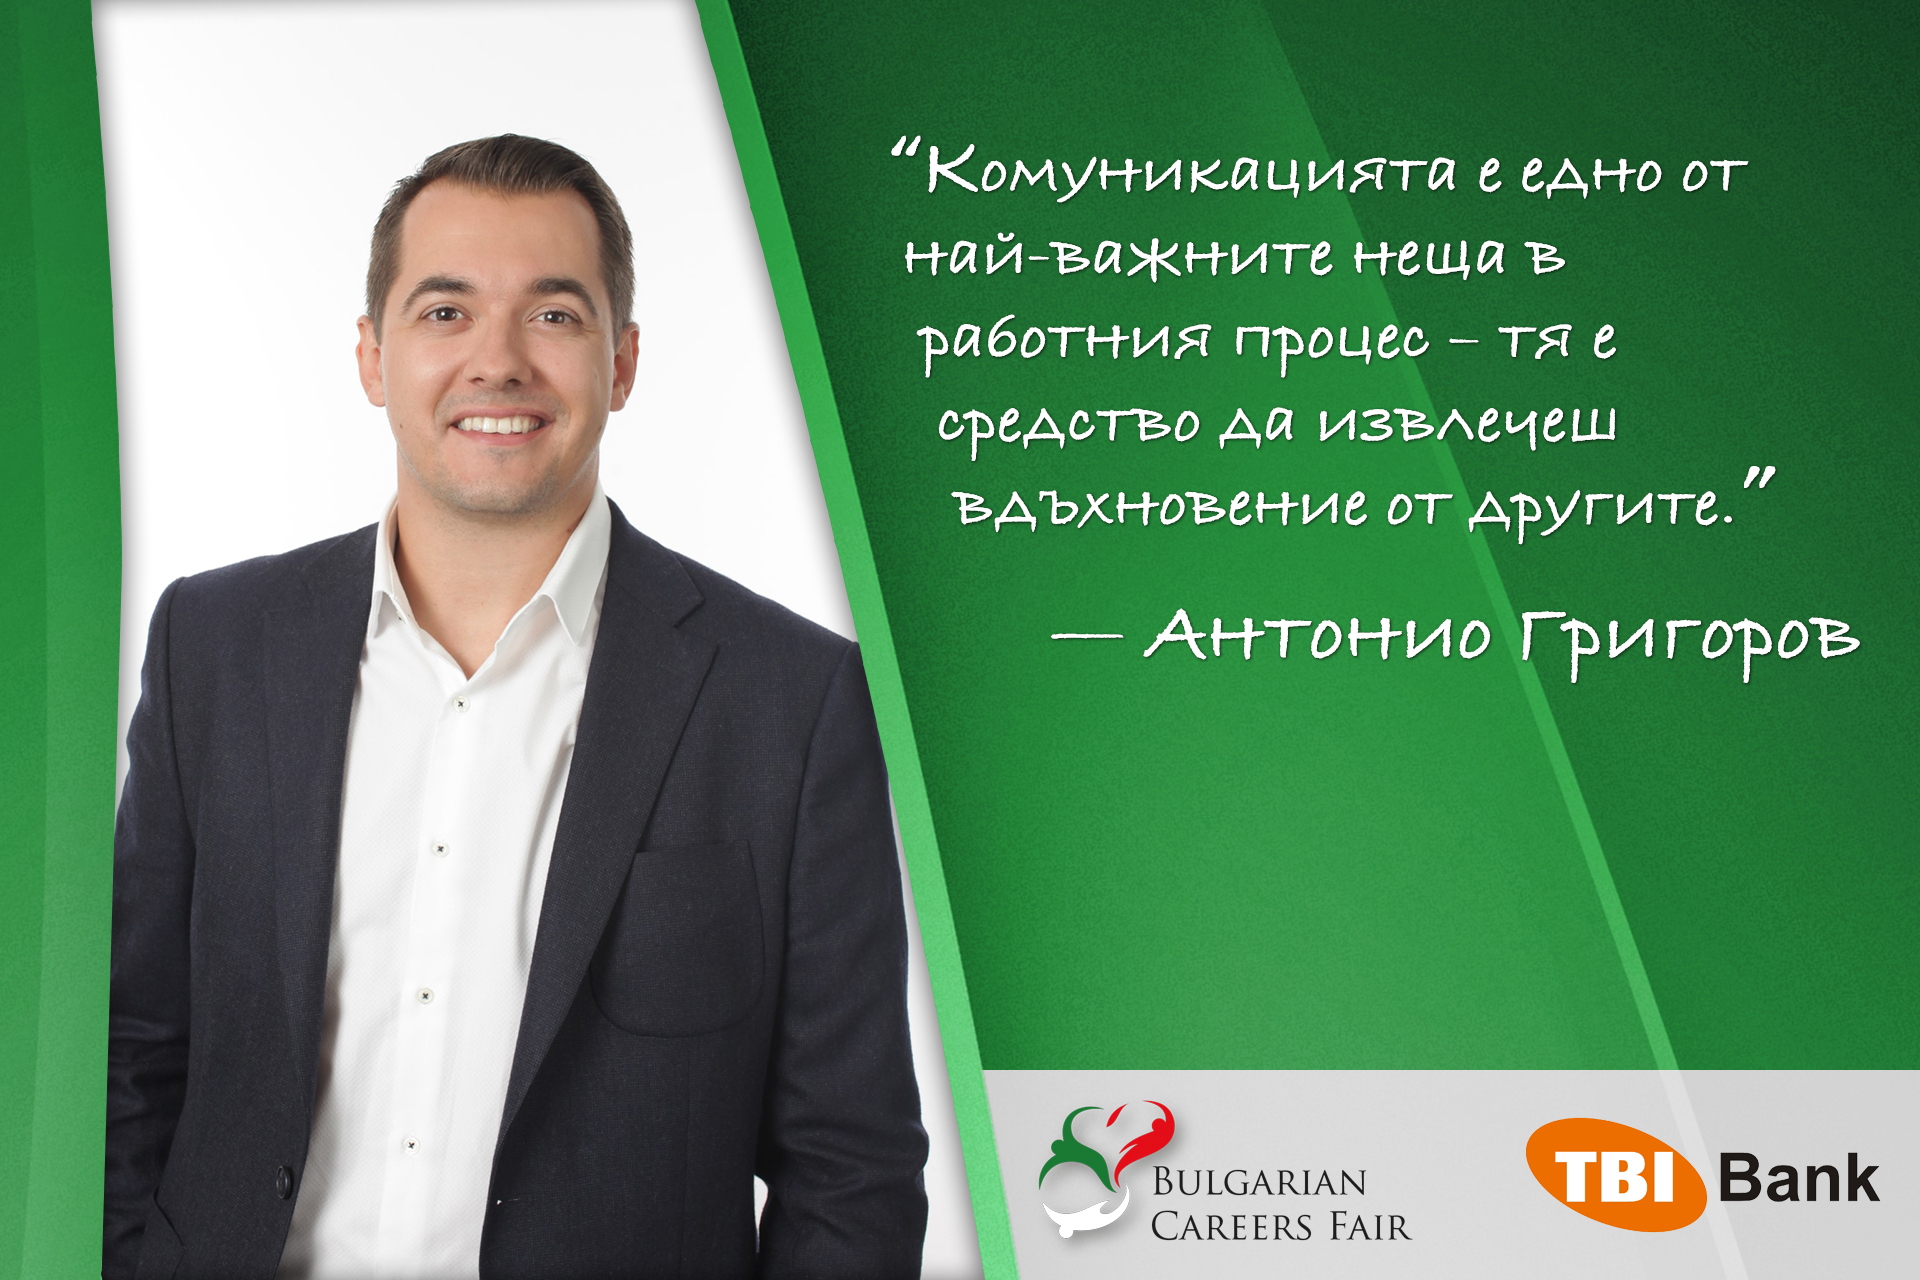 Antonio-Grigorov_quote